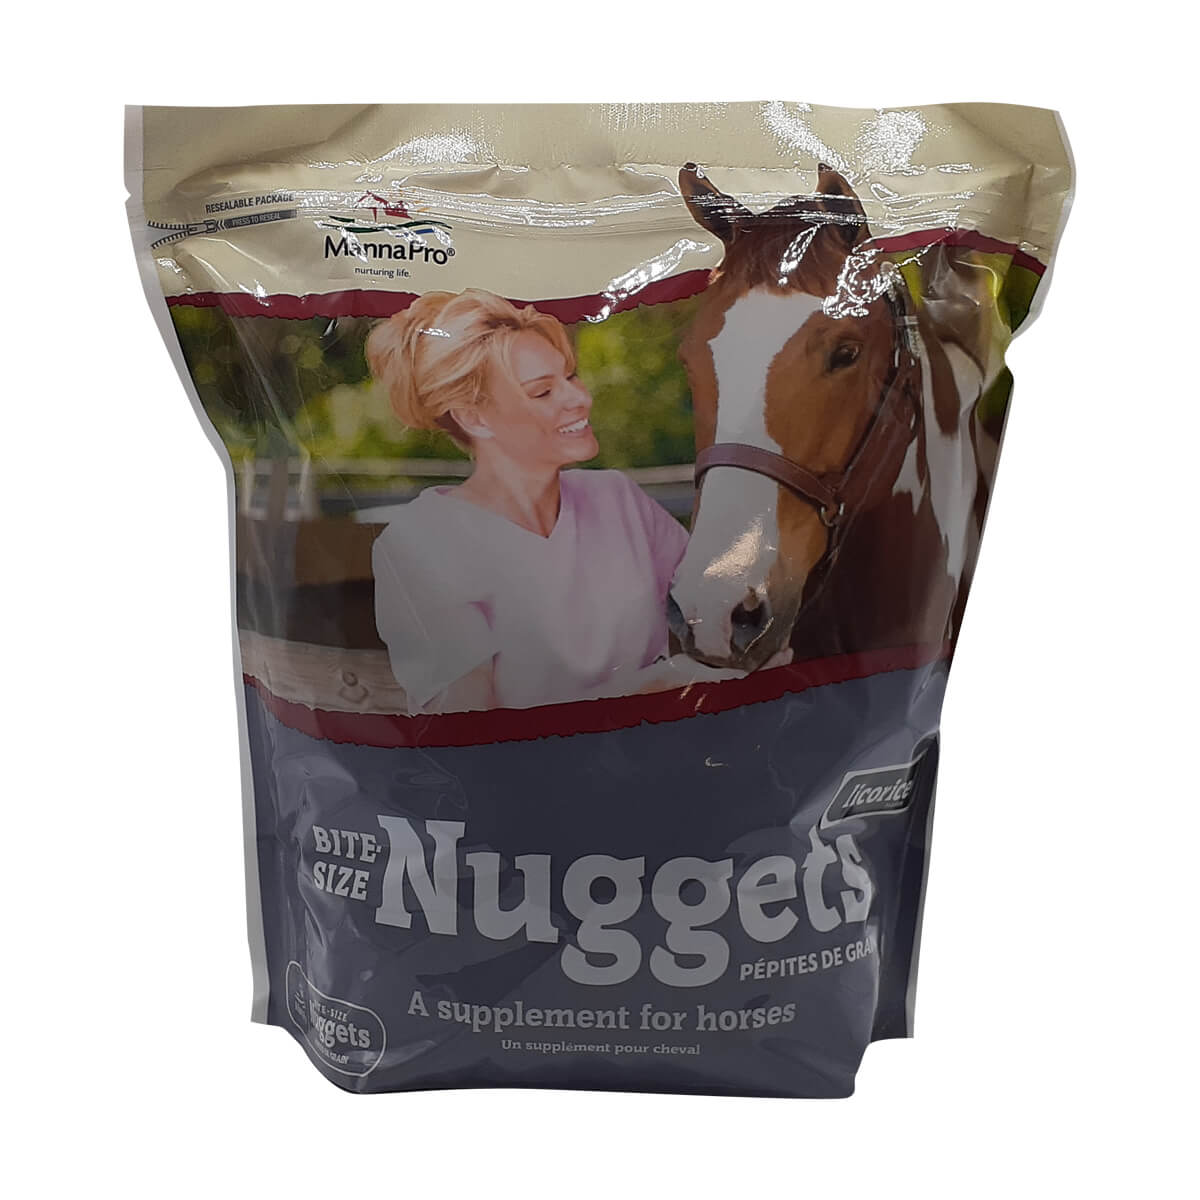 Bite-Sized Apple Nuggets for Horses - Licorice - 5 lb